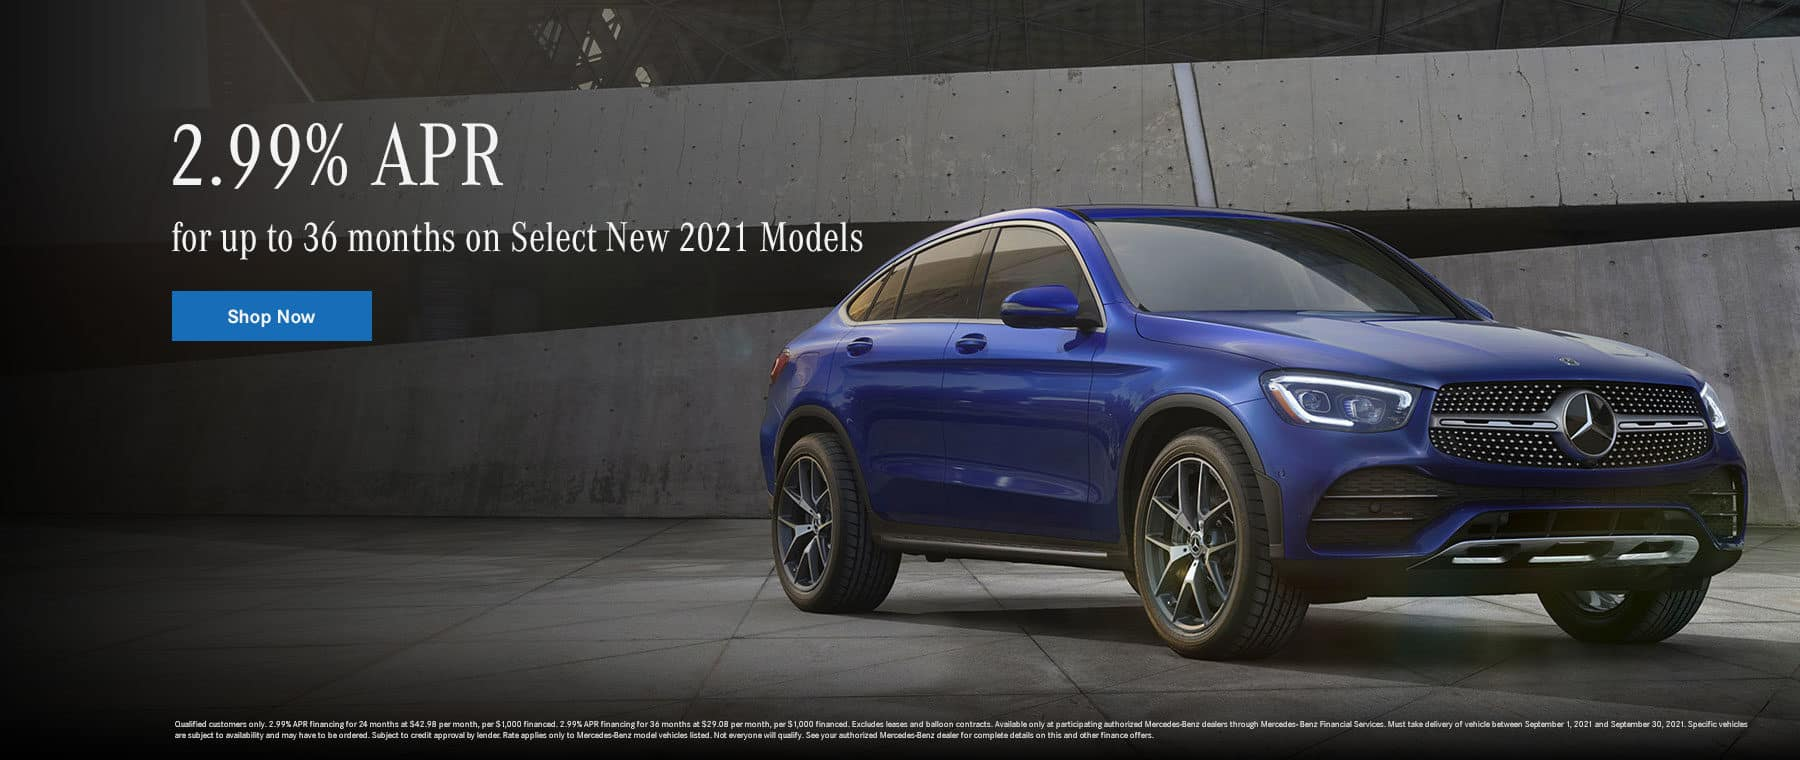 2.99% APR for up to 36 months on Select New 2021 Models